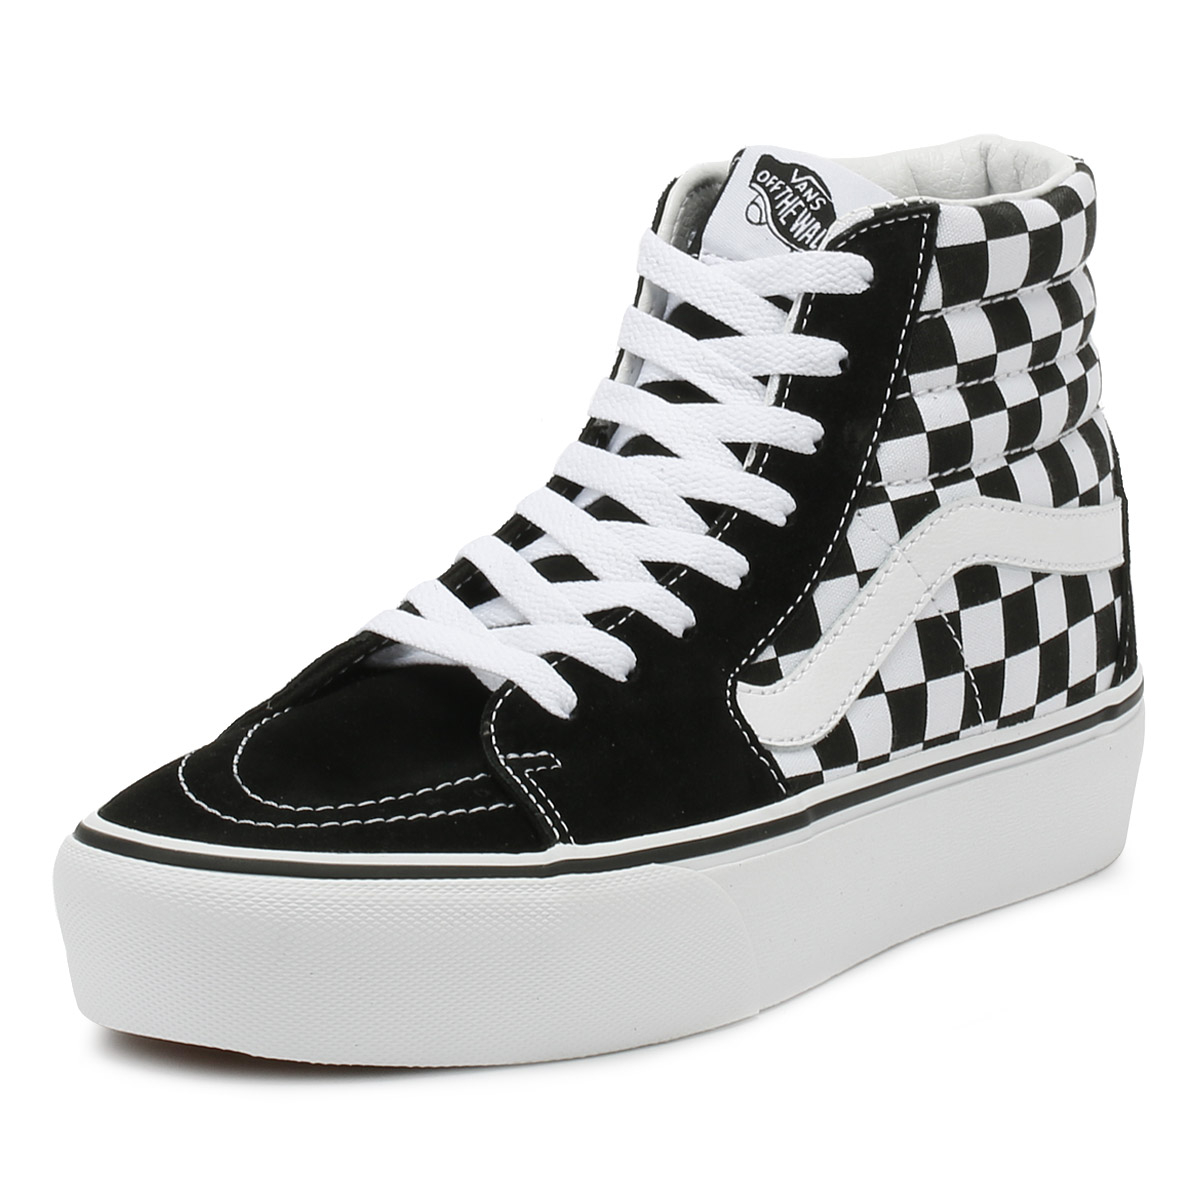 Details about Vans Womens Trainers Black   True White Checkerboard SK8-Hi  Platform Shoes 87f0dd6a7